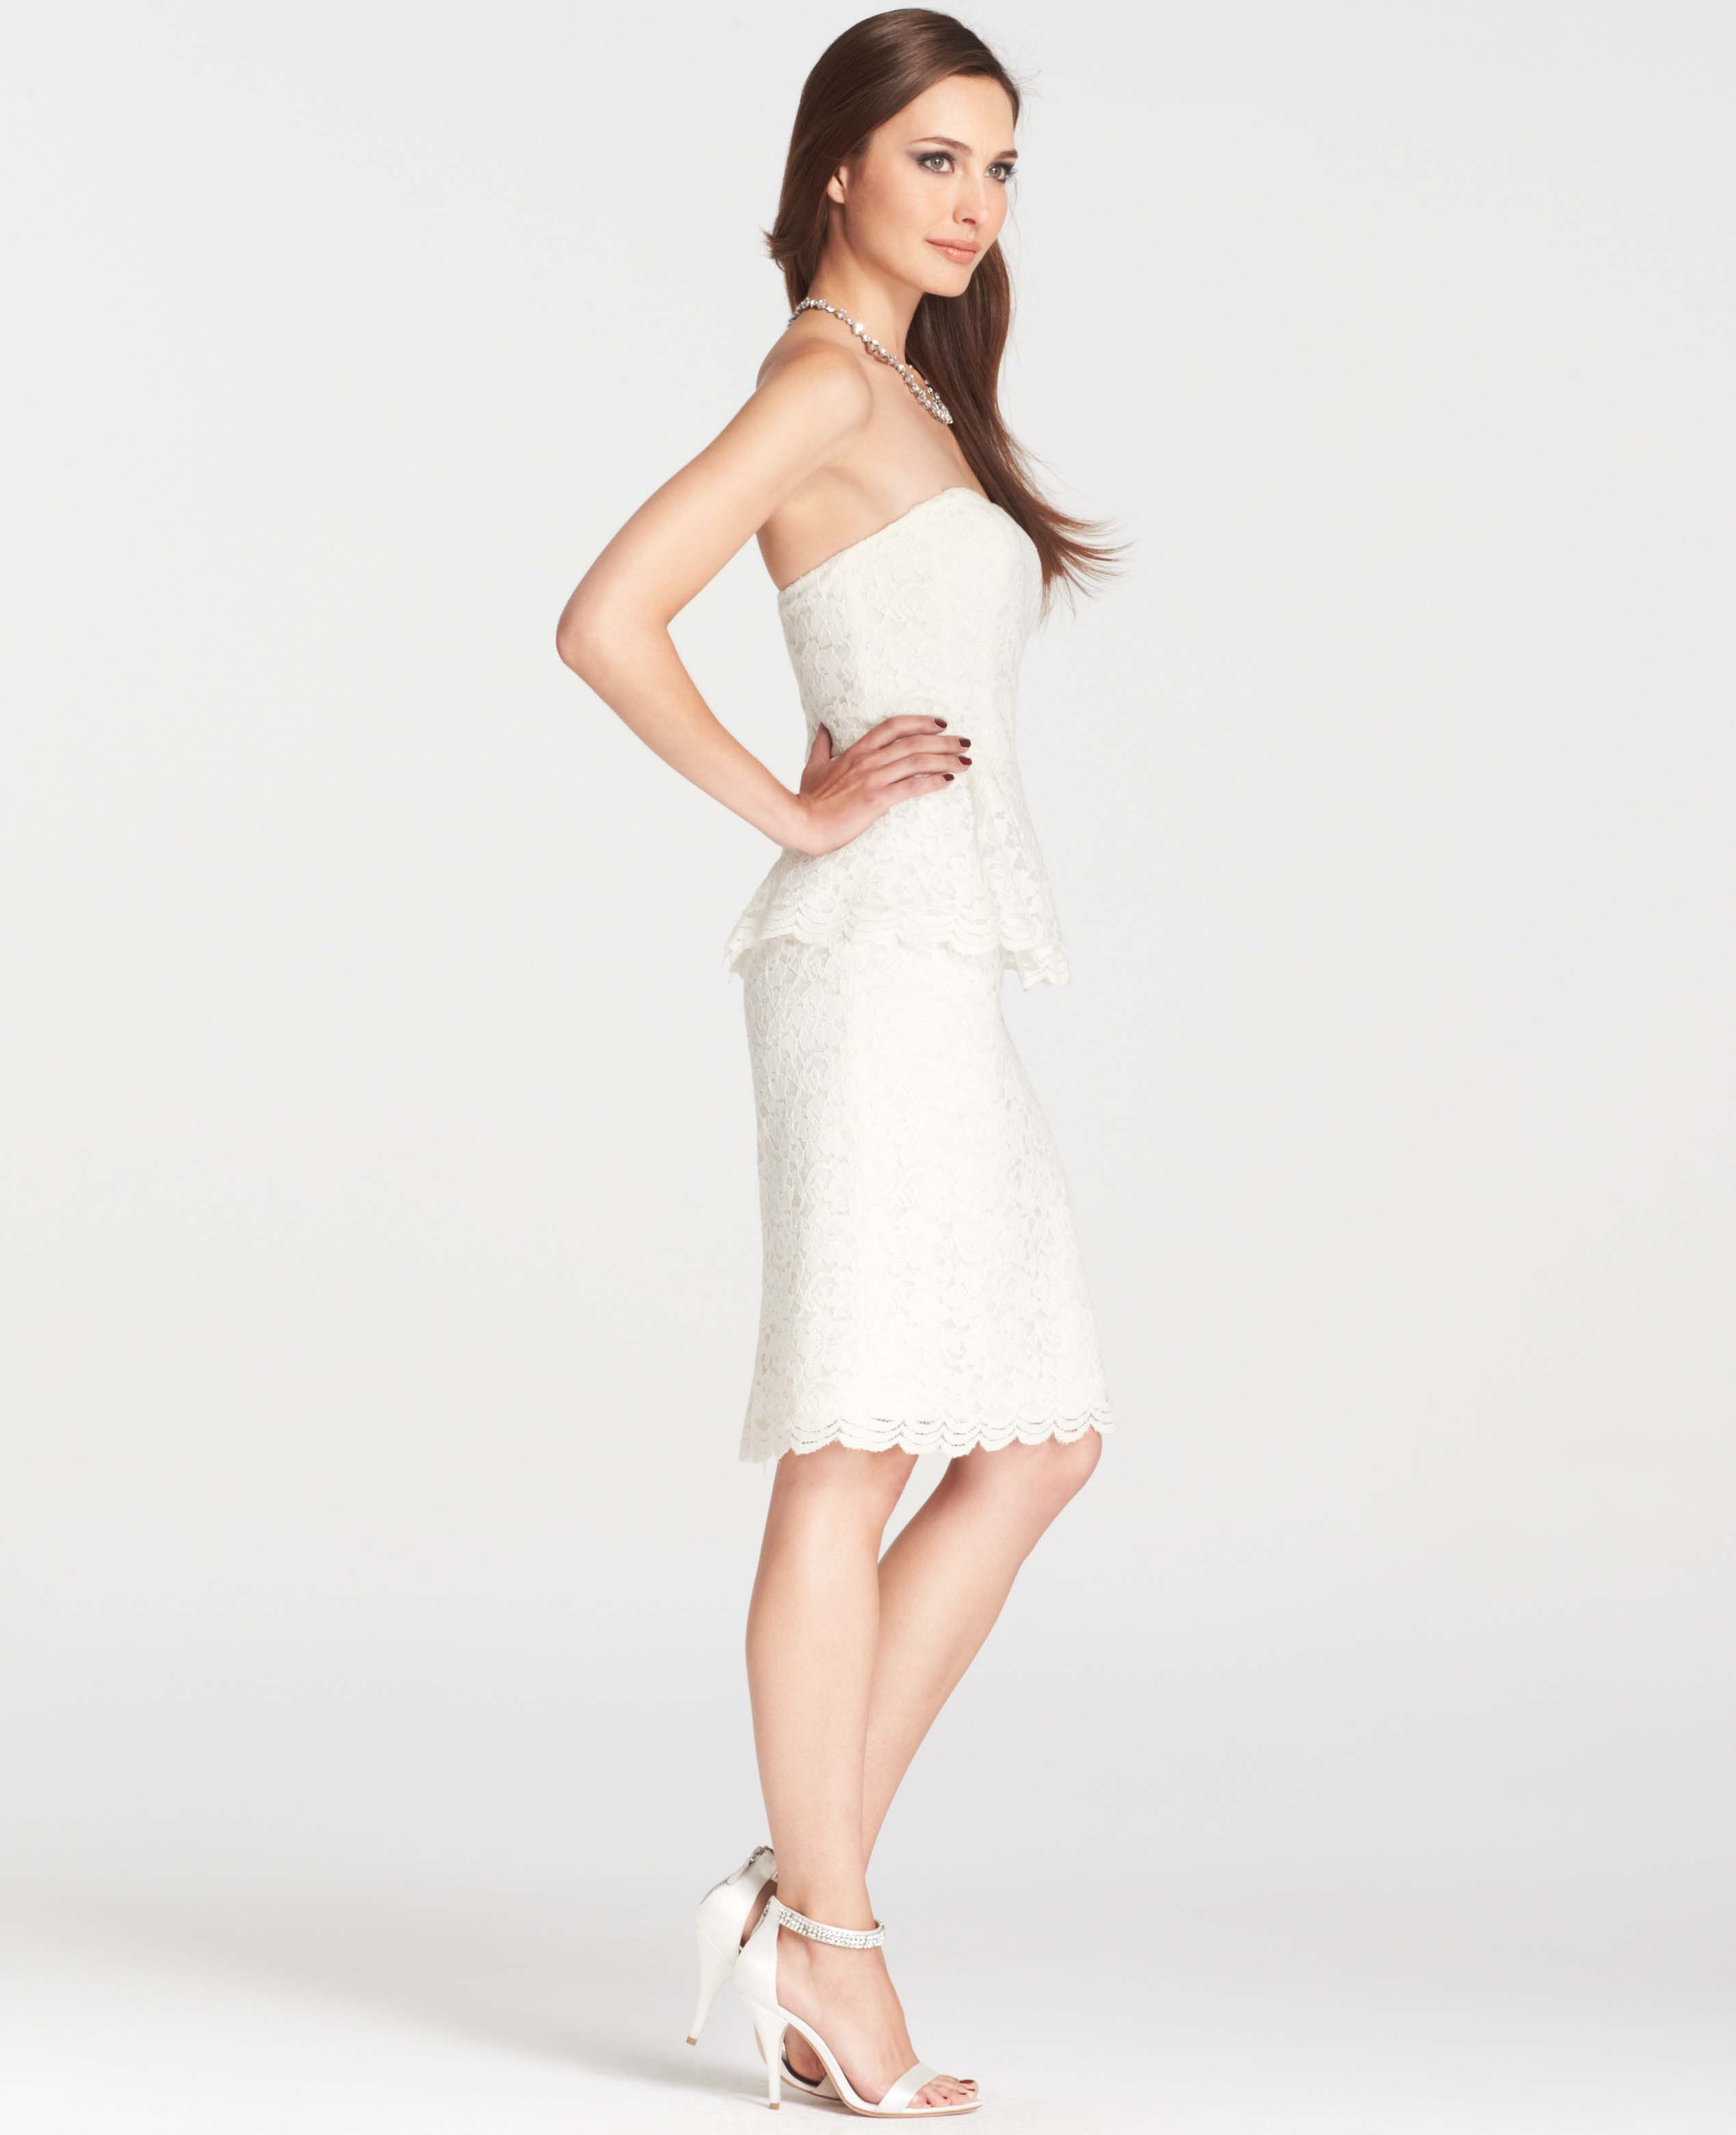 Lyst - Ann Taylor Petite Strapless Lace Peplum Dress in White